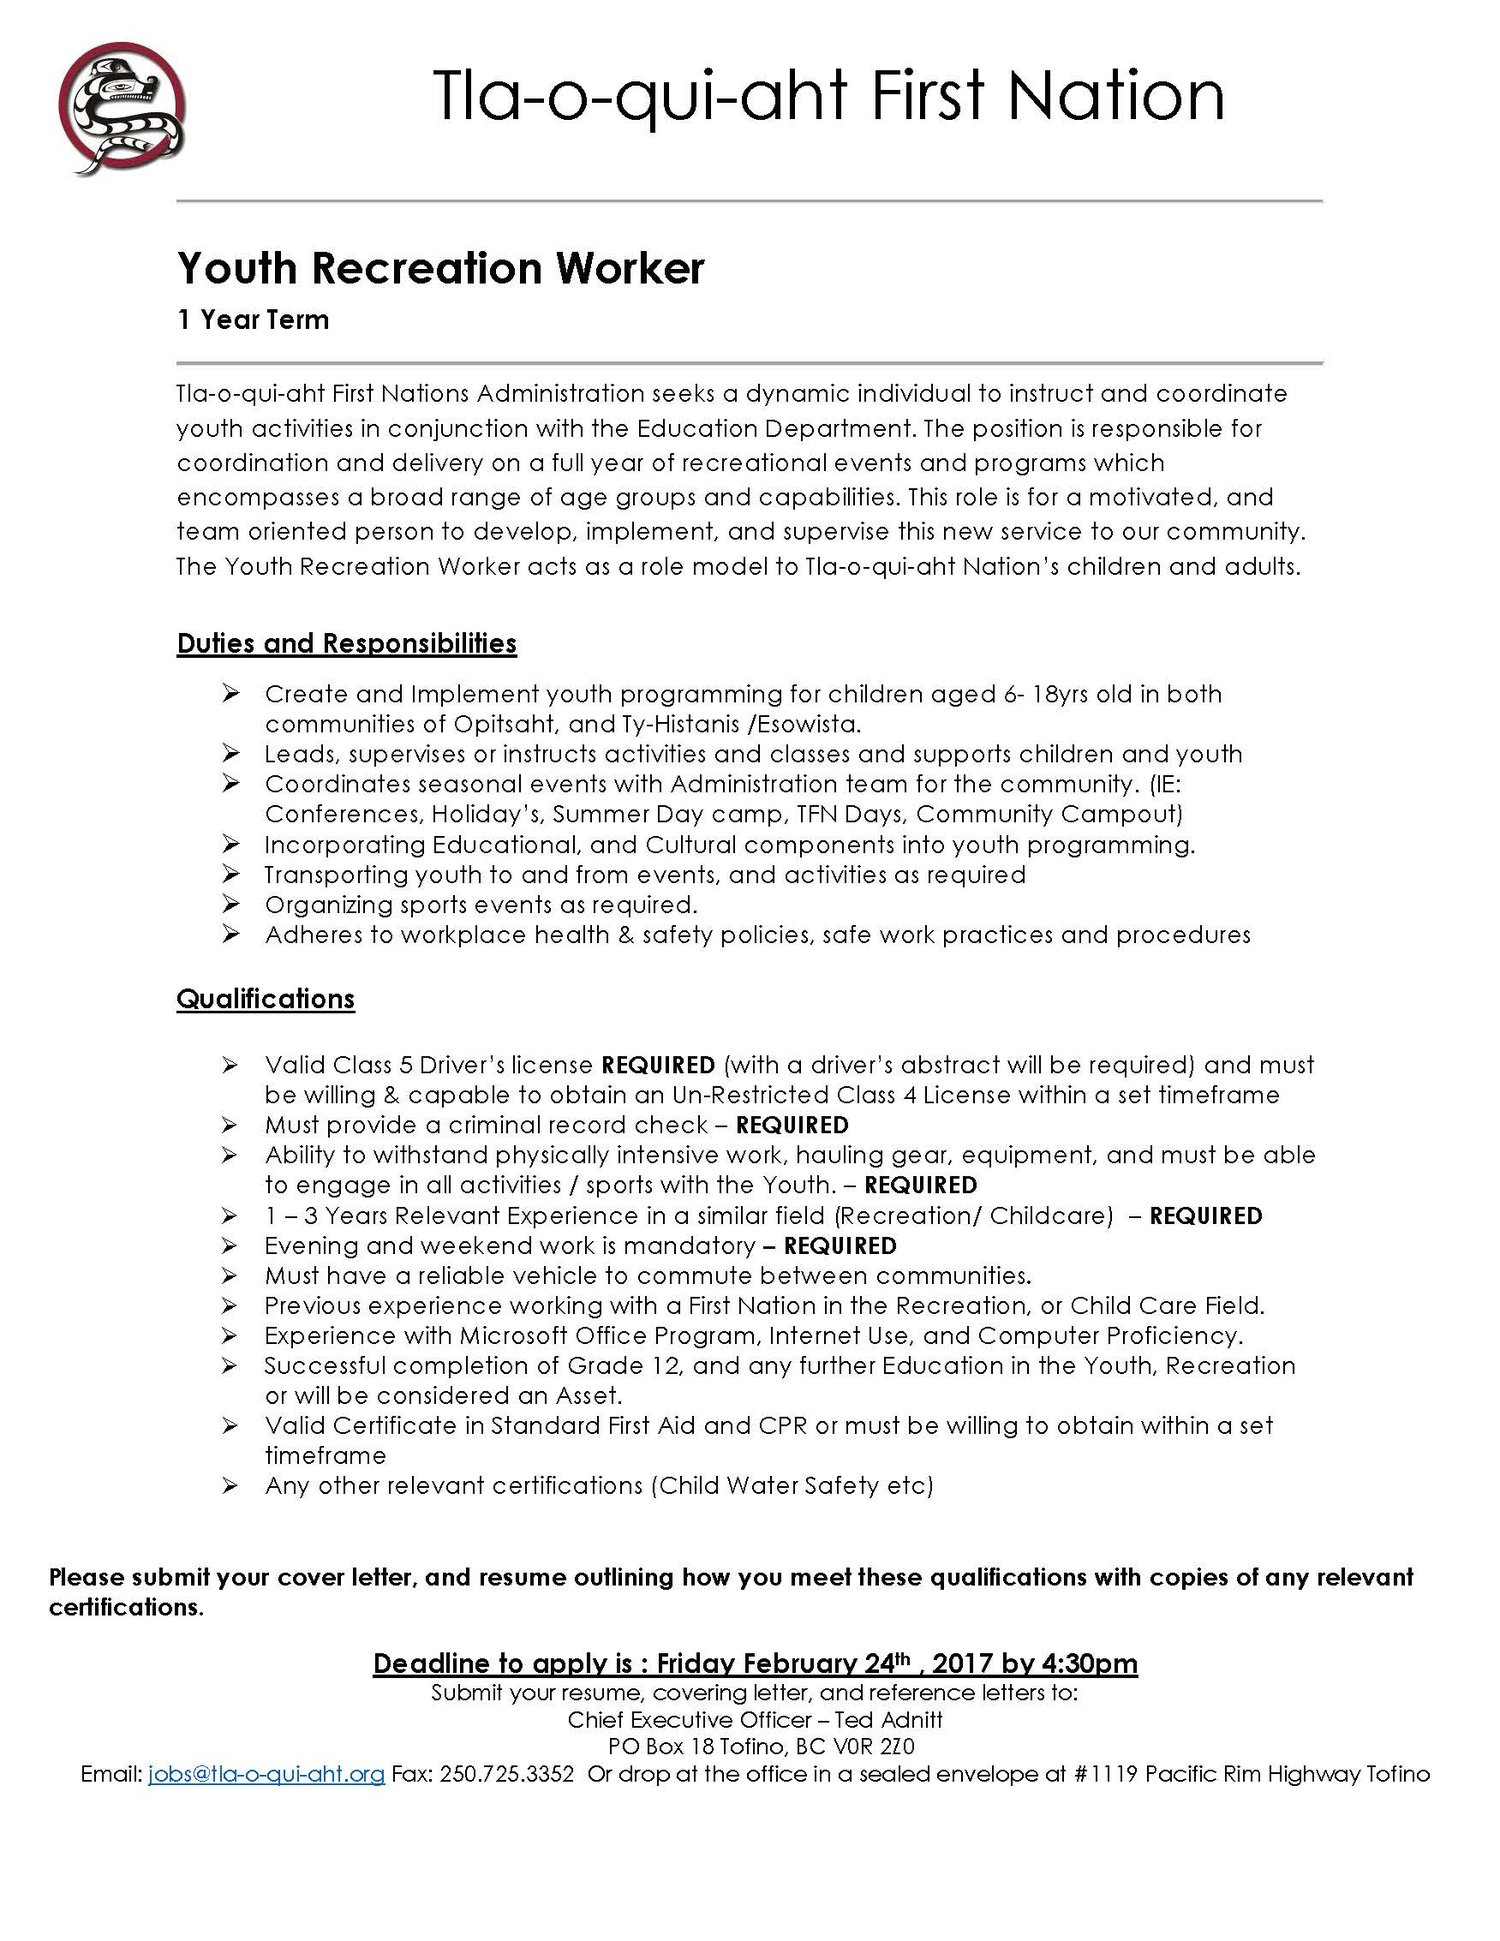 youth recreation worker job posting - Recreation Cover Letter